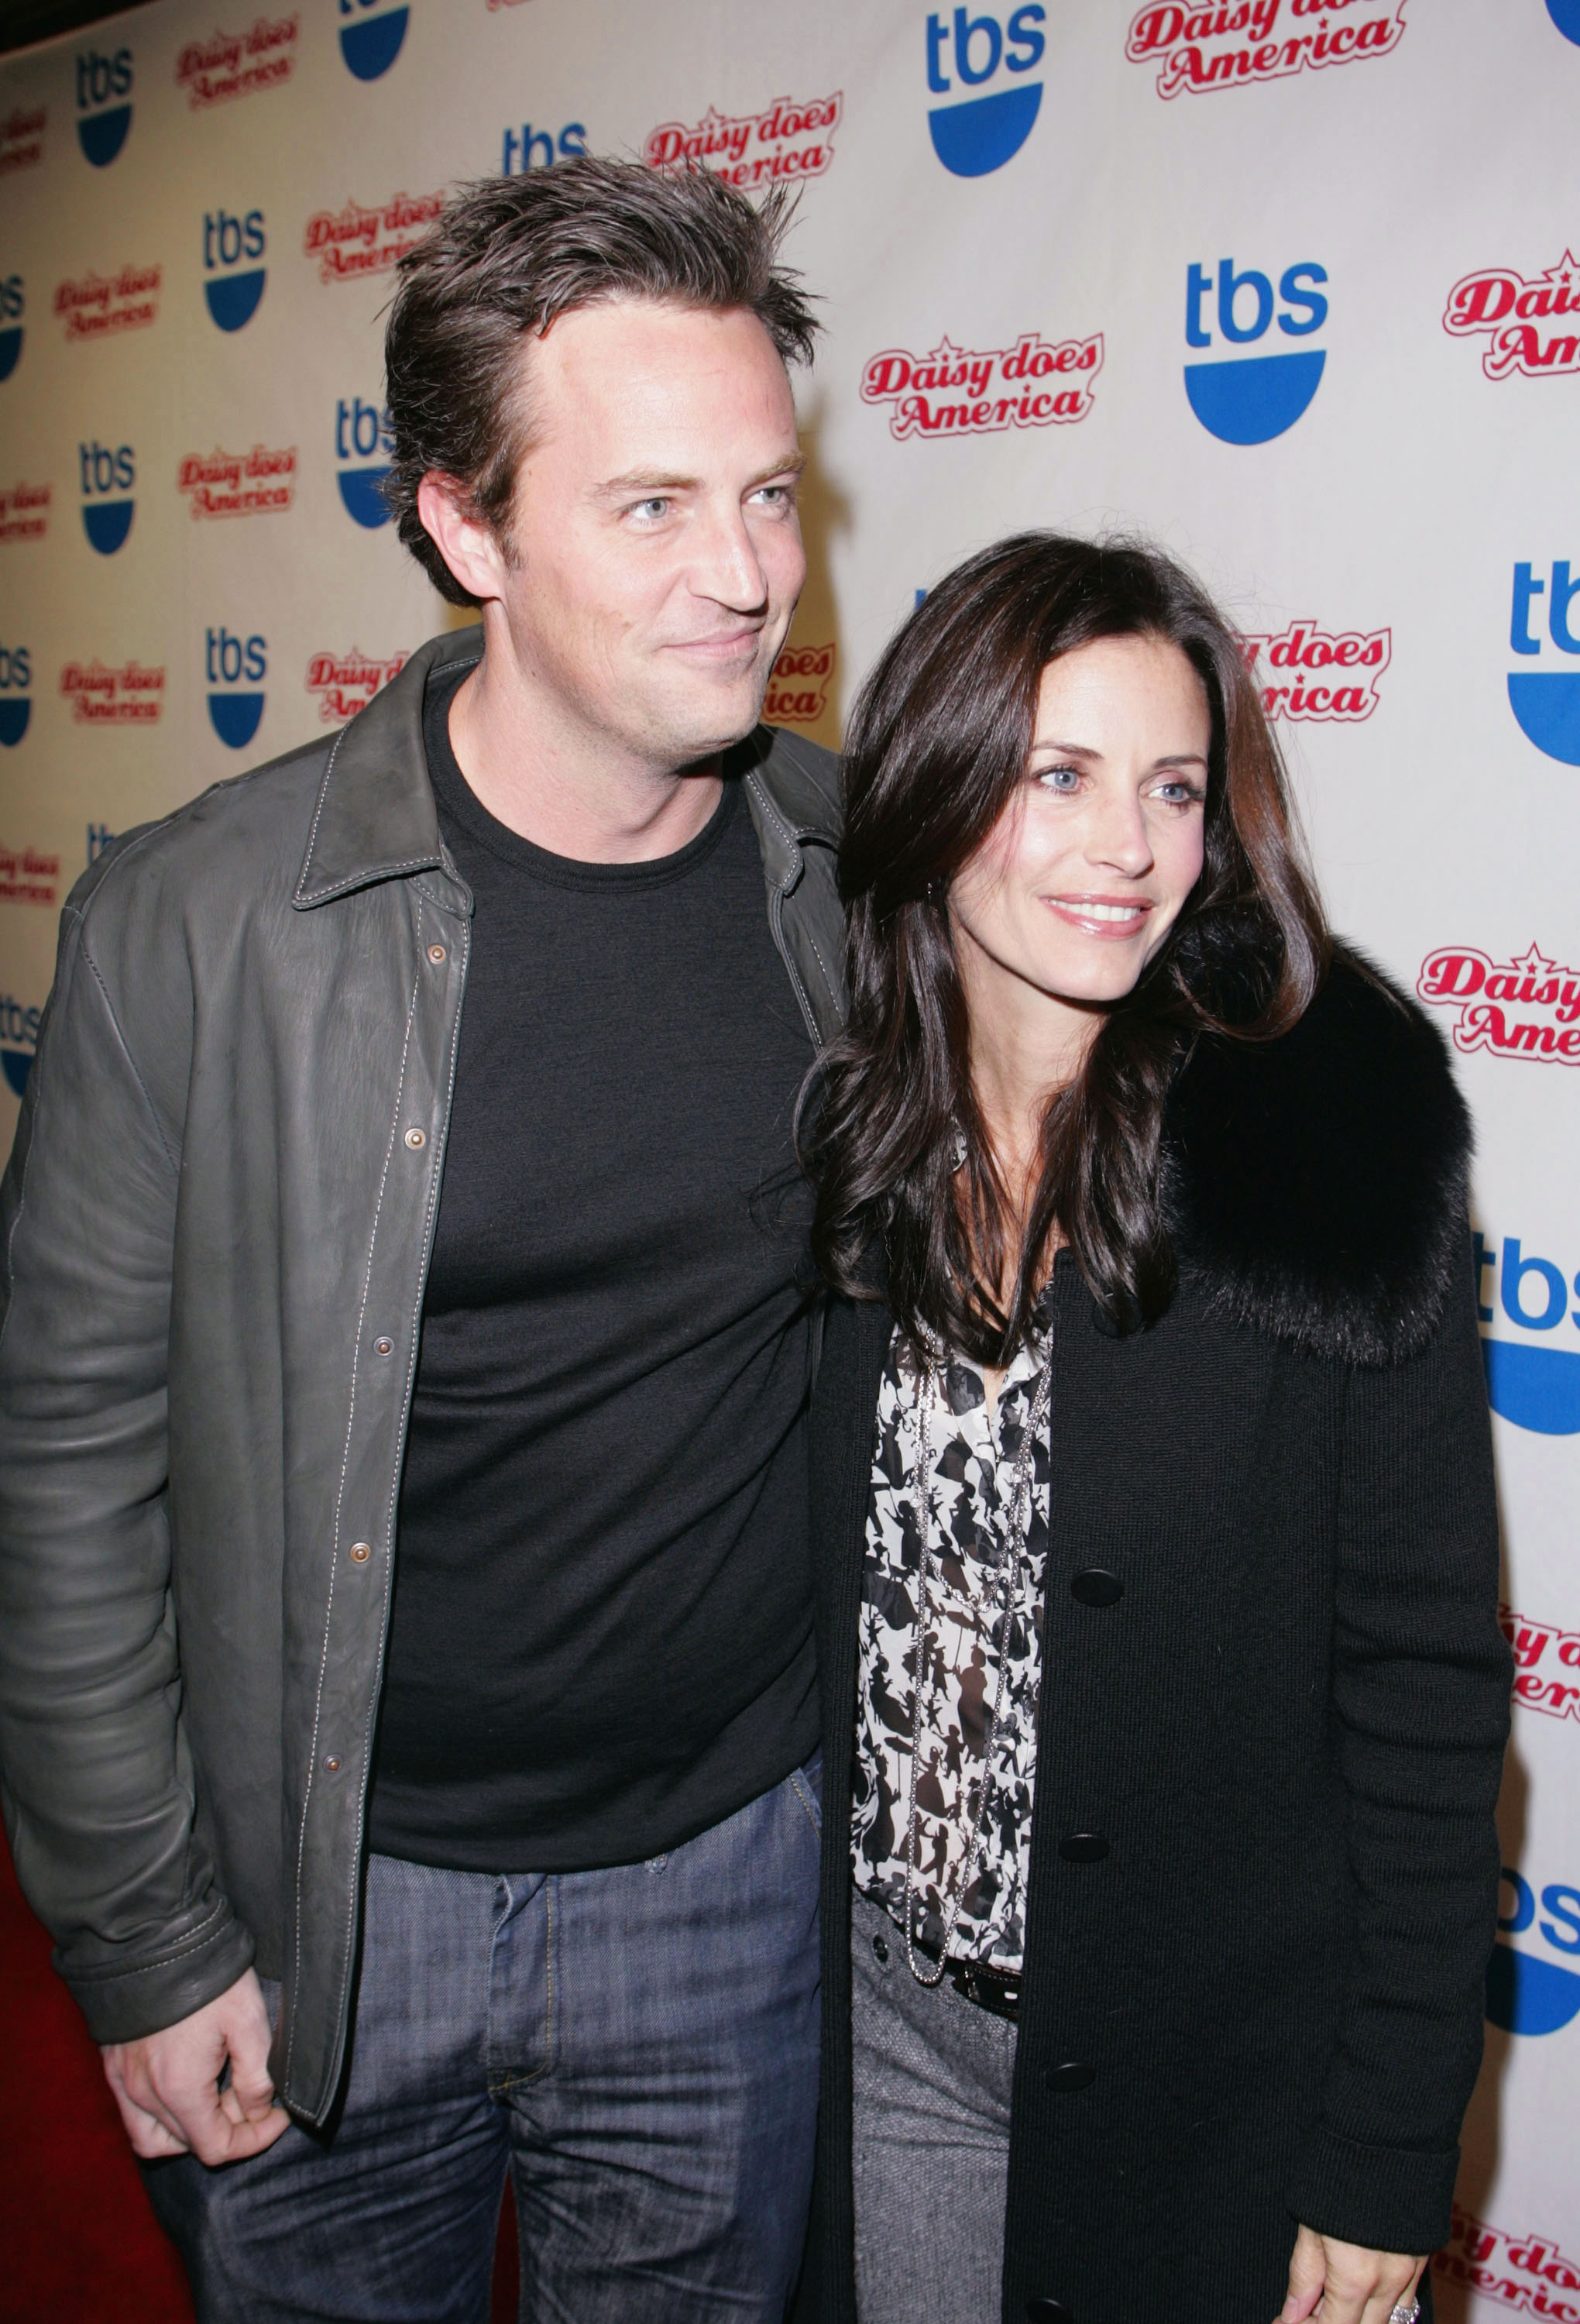 Courteney Cox relationships